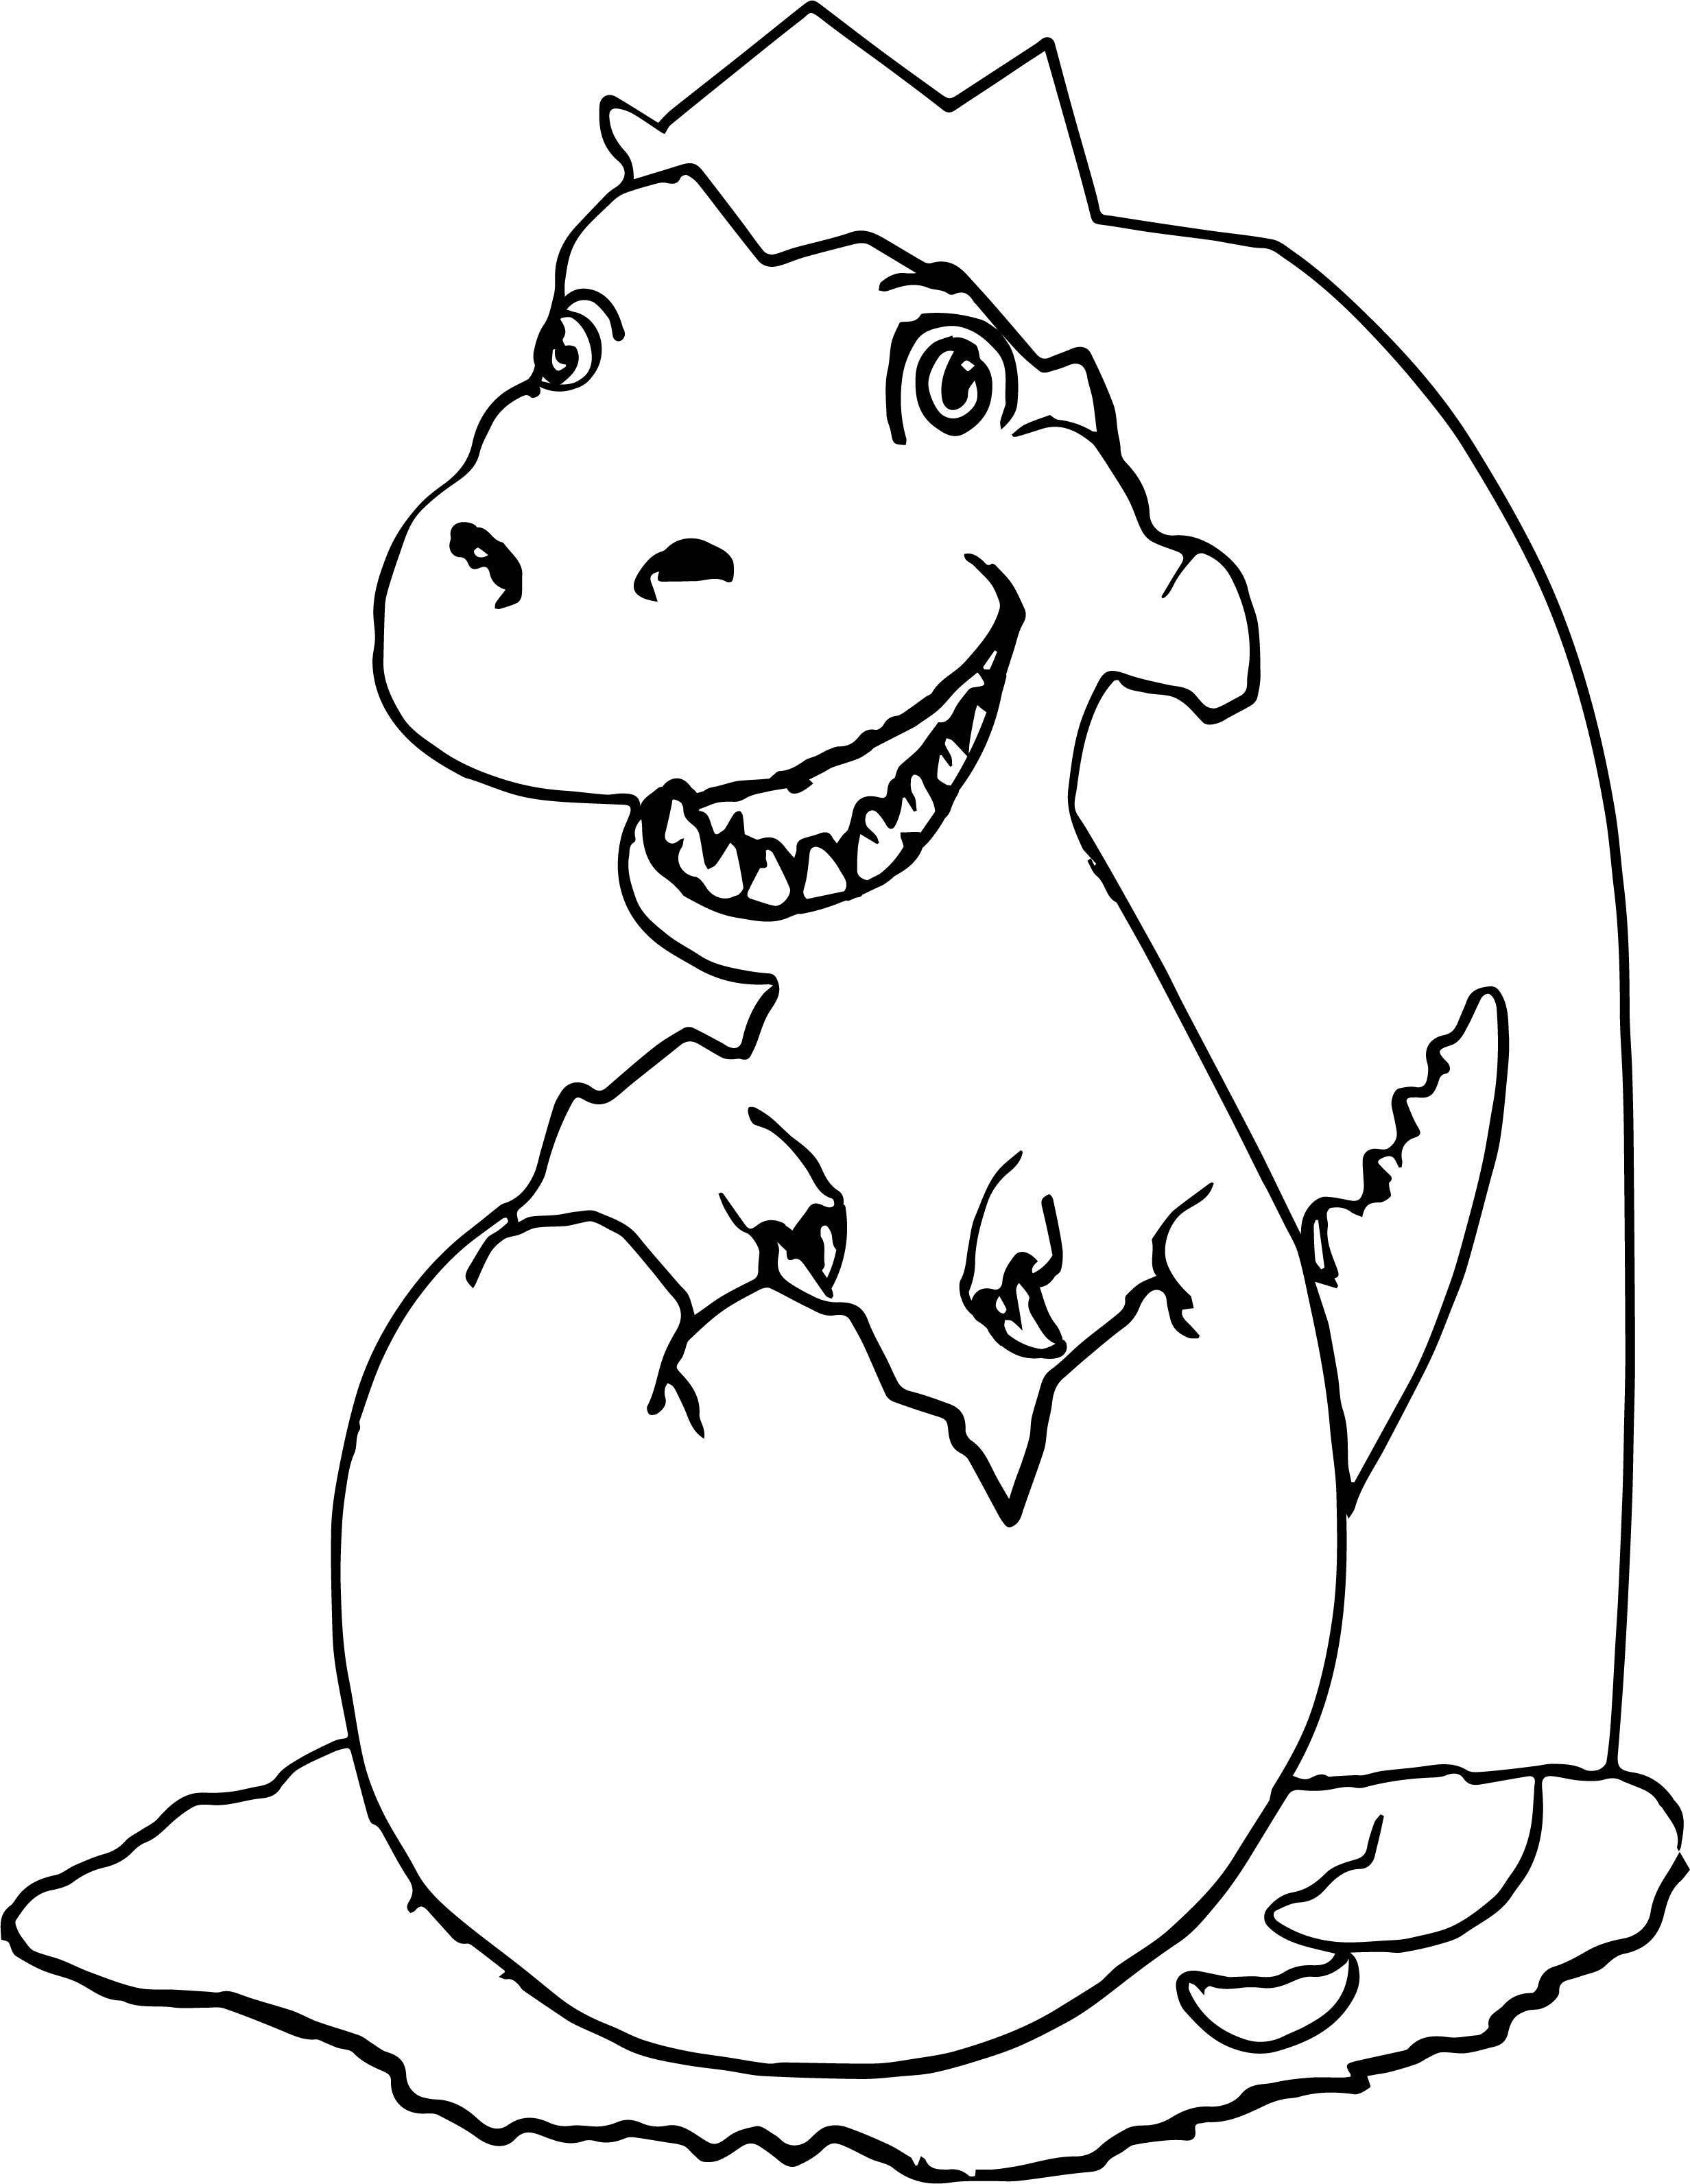 New Baby Dinosaur Coloring Pages Dinosaur coloring pages